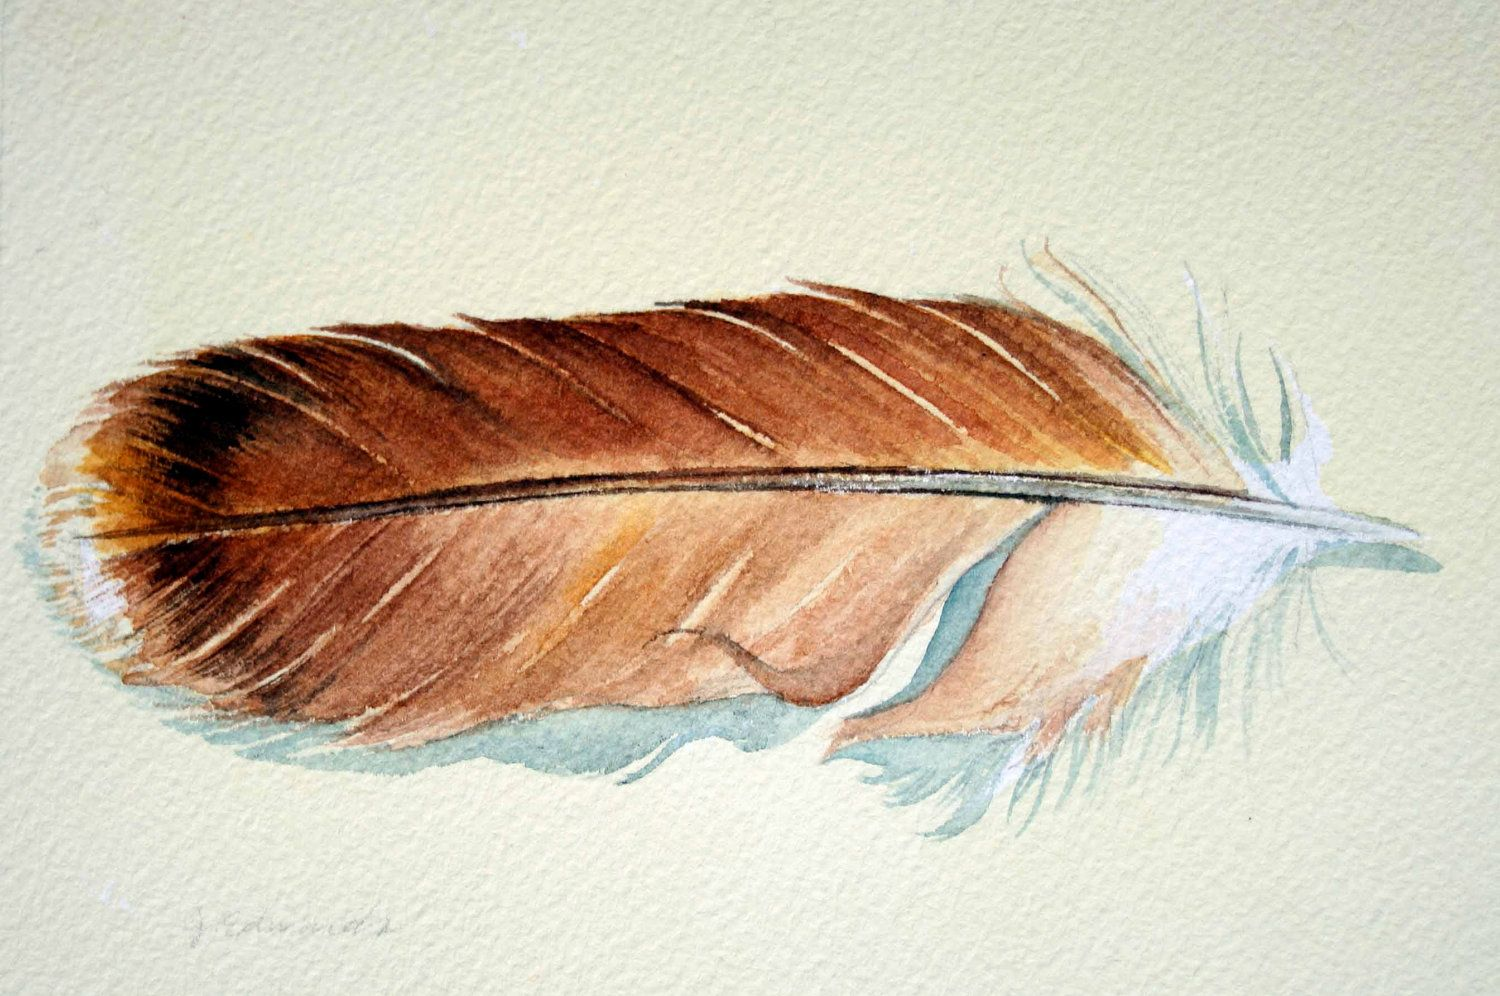 Red tailed hawk feather tail feather sketch tattoo idea tattoo